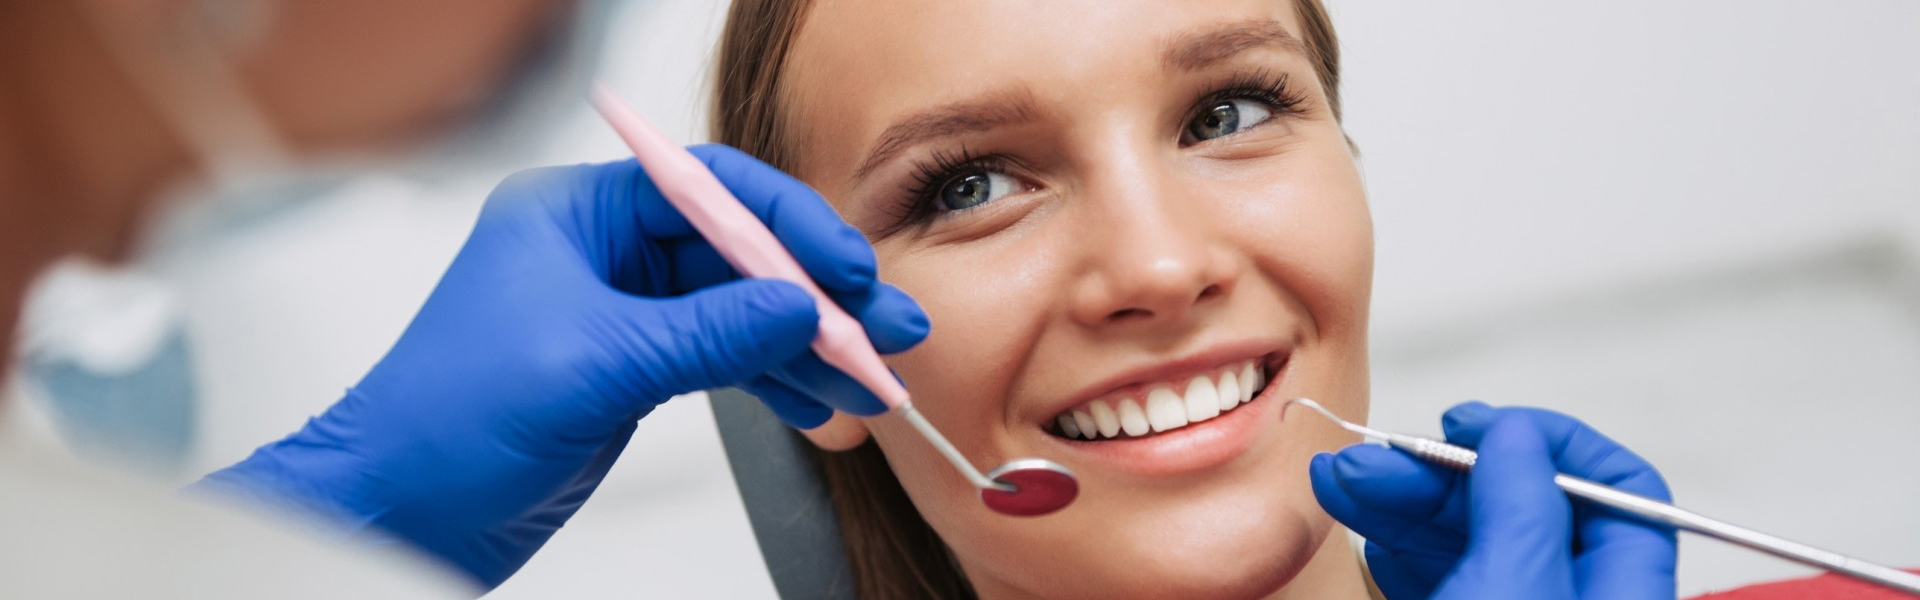 How To Get Rid Of Dental Phobia With Sedation Dentistry